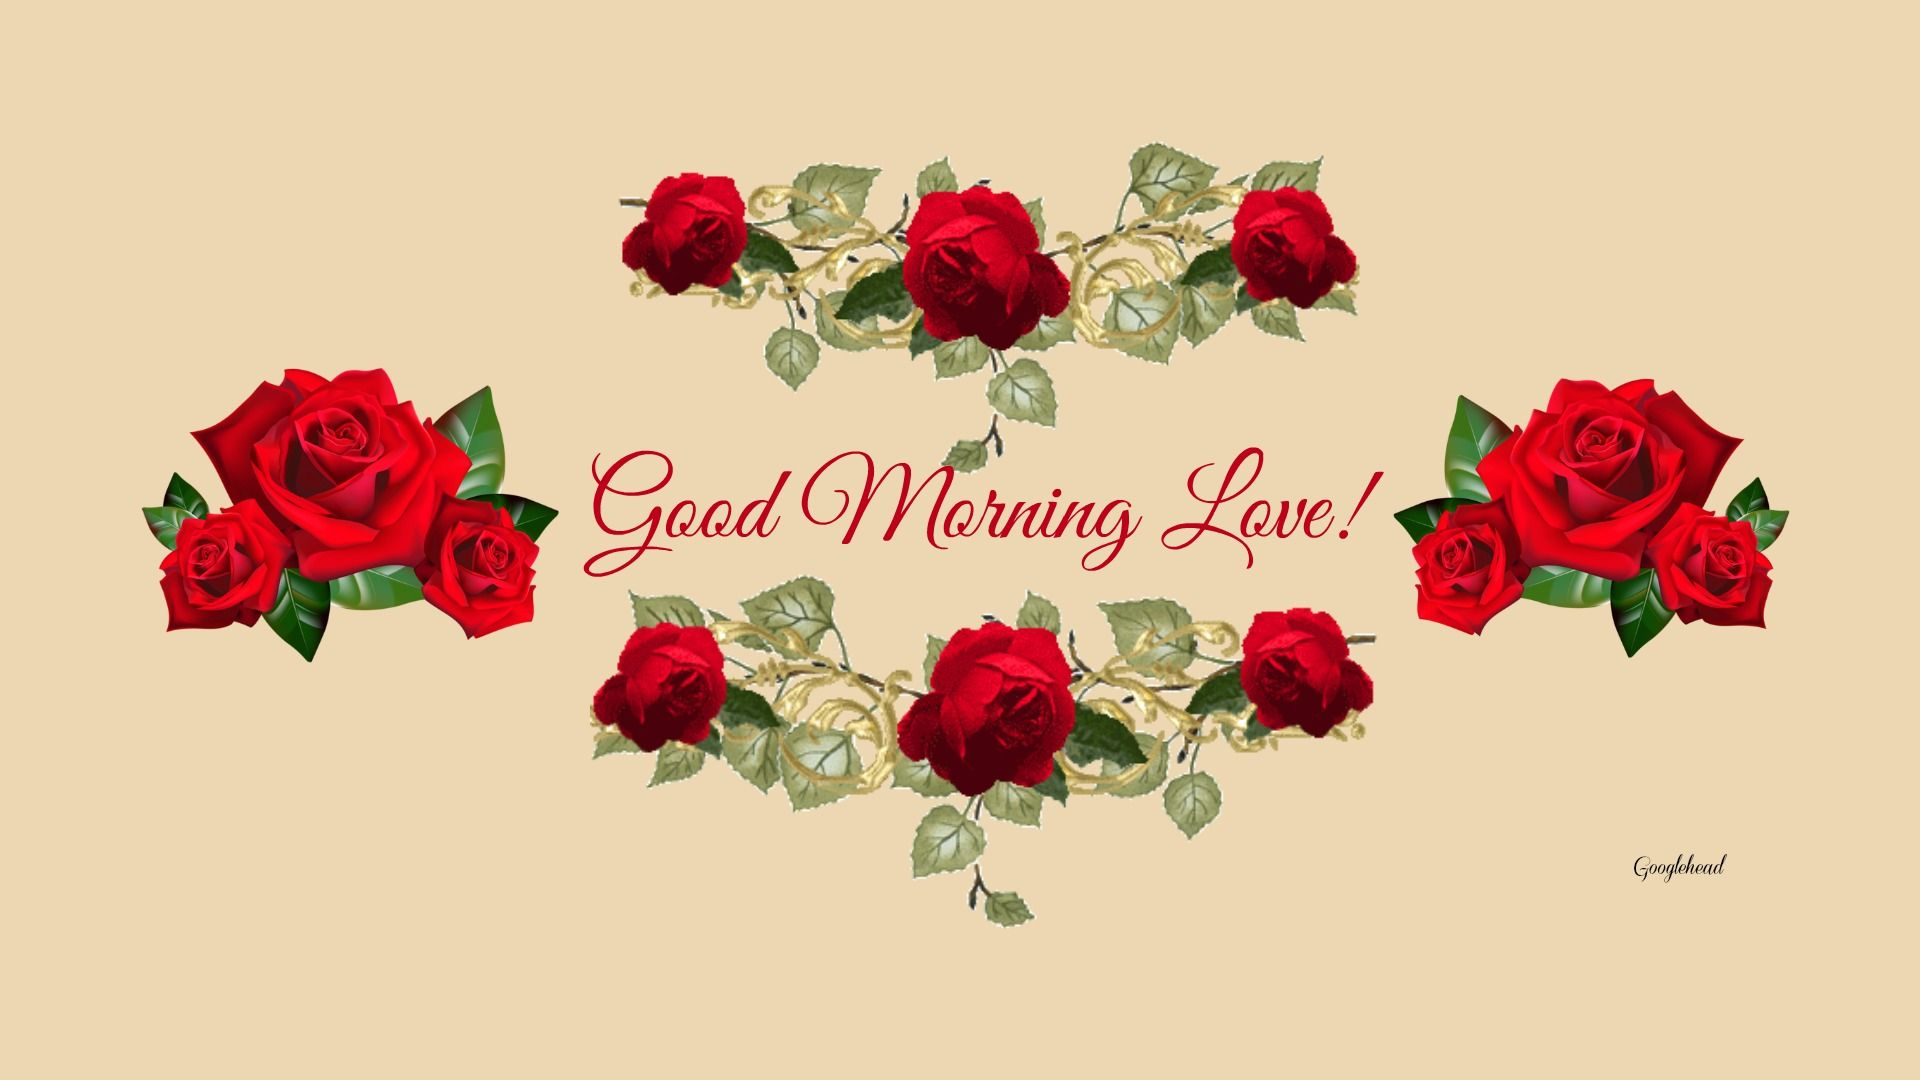 Hd wallpaper good morning - Good Morning Wallpaper With Messages For Whatsapp Wallpapers Hd Pinterest Wallpaper And Messages